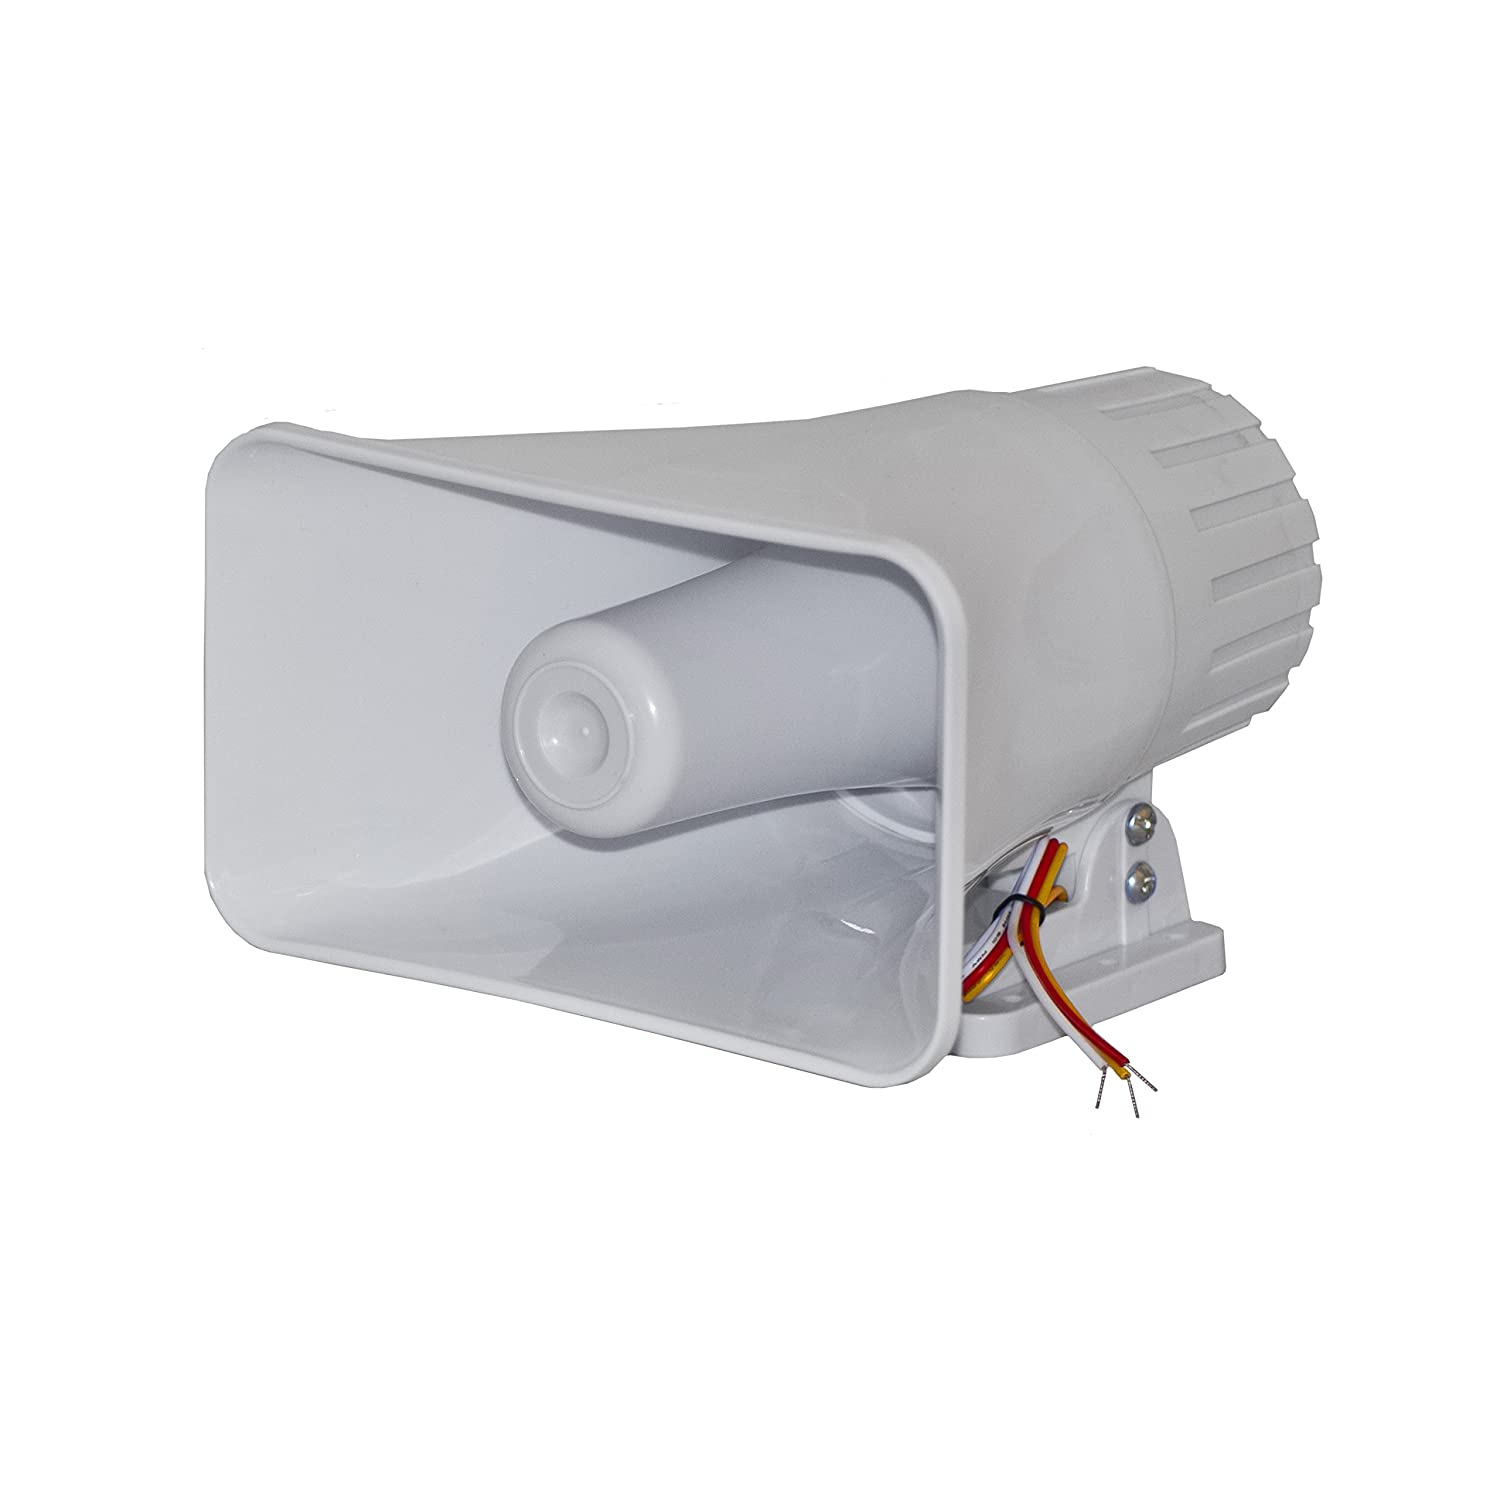 ALEKO® BS112 12 V Big Electronic Wired Alarm Siren Horn for Security System, White Color 4336302846